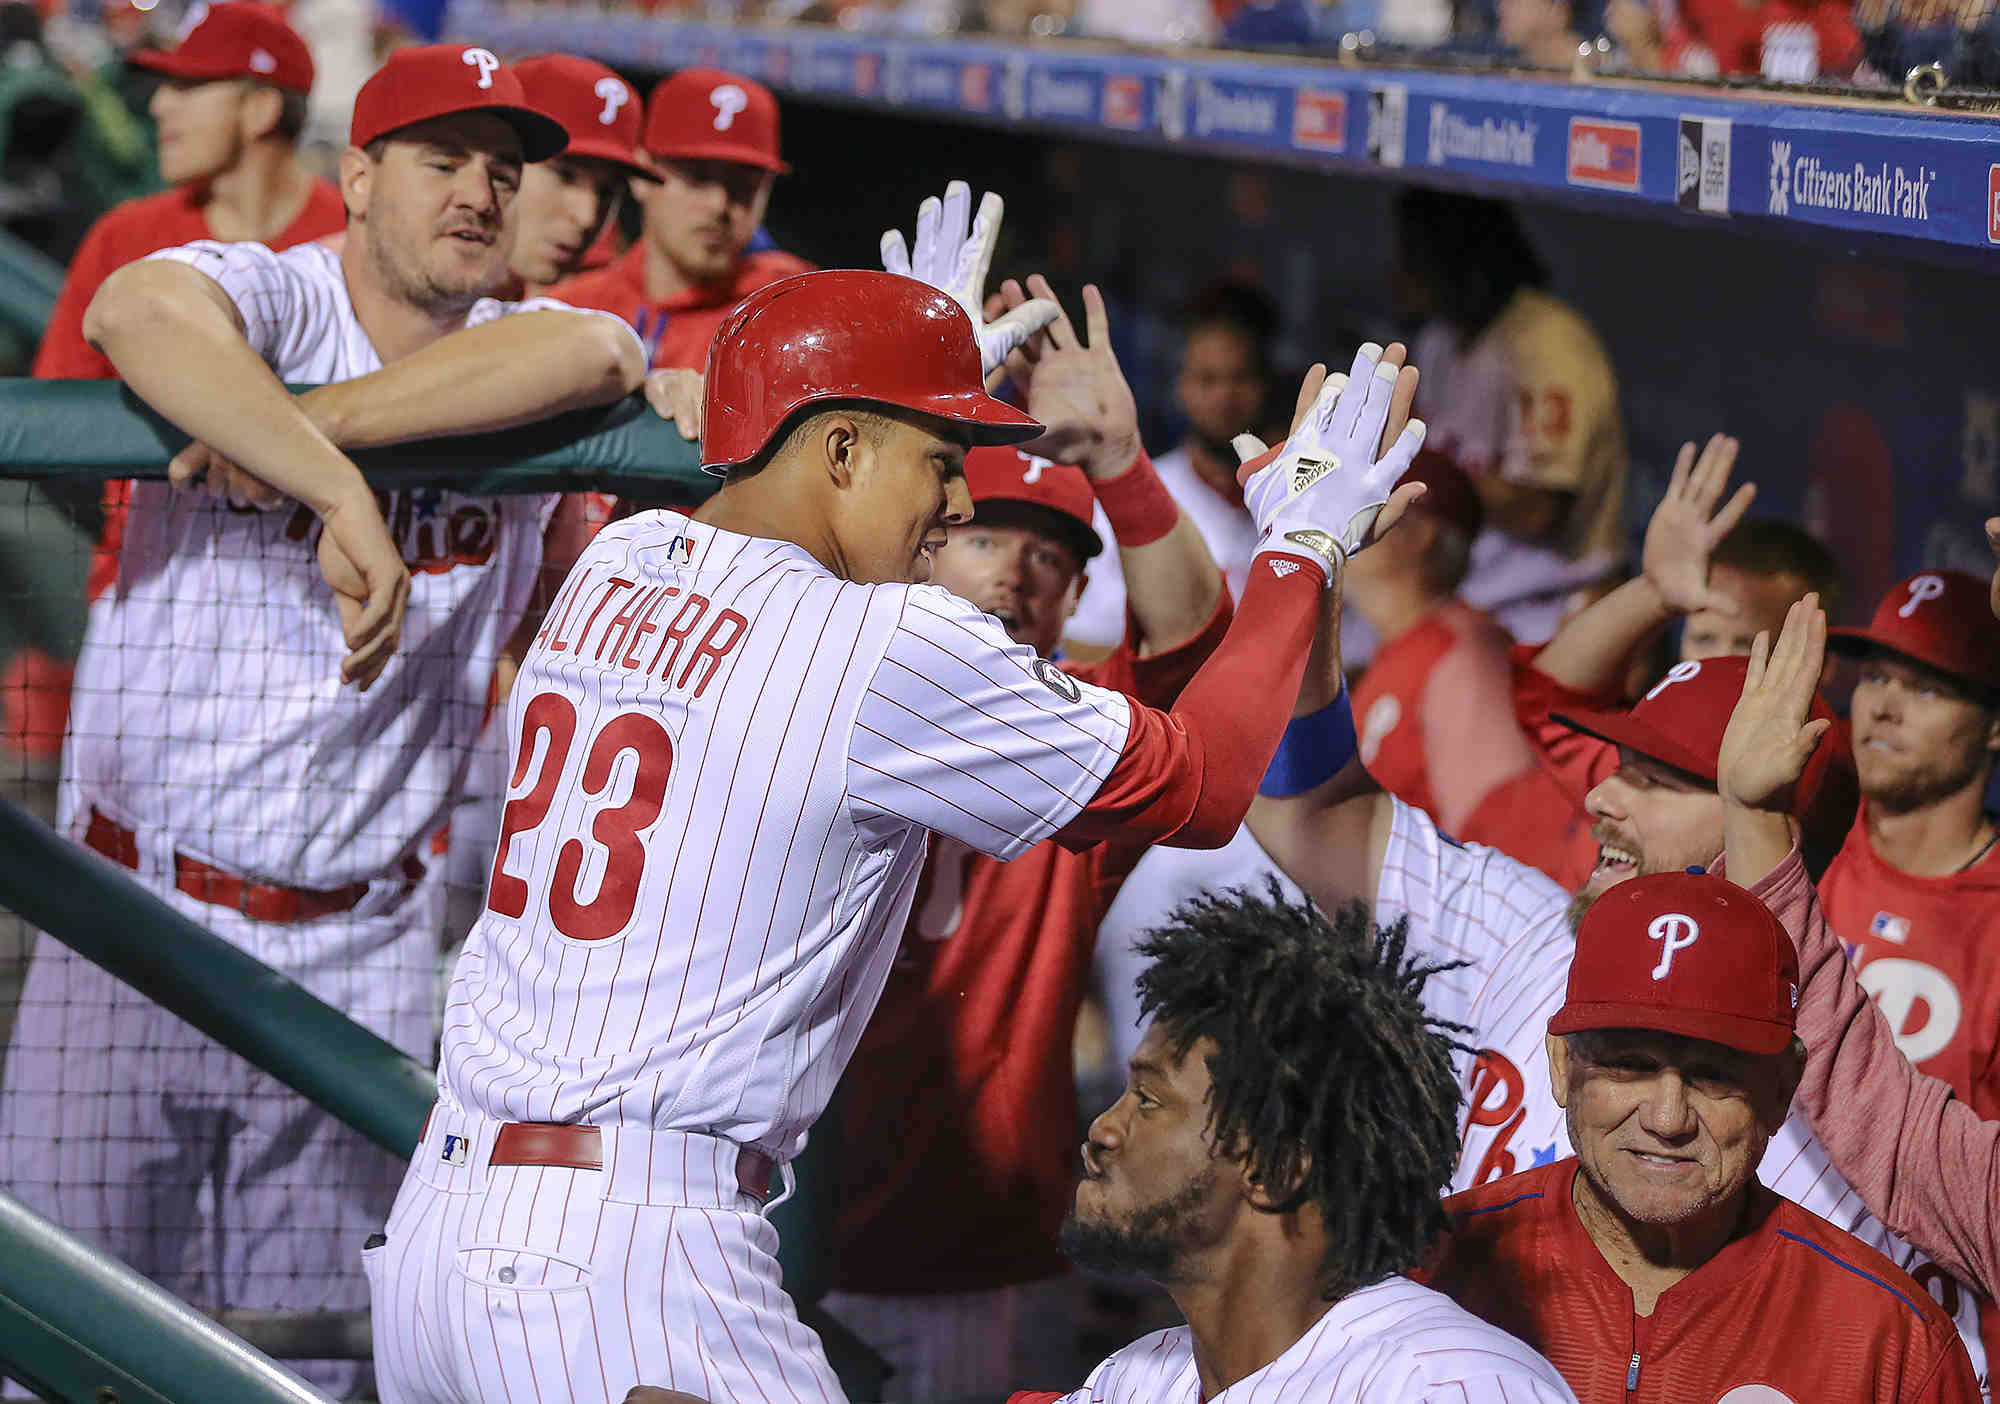 Phillies´ Aaron Altherr celebrates his solo homer against the  Dodgers during the 8th inning at Citizens Bank Park in Philadelphia, Tuesday, September 19, 2017.  Phillies beat the Dodgers 6-2.   STEVEN M. FALK / Staff Photographer